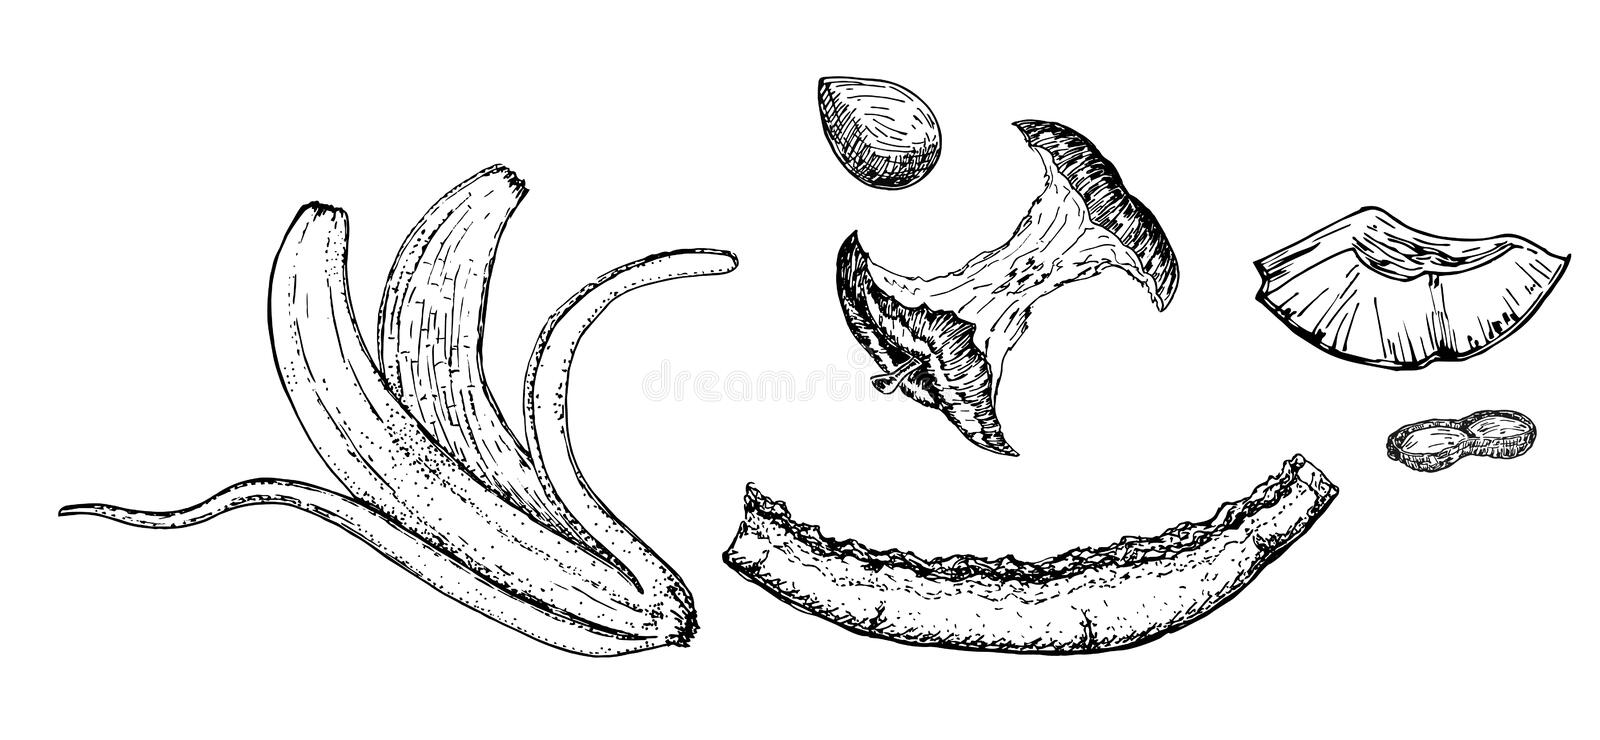 Organic waste, food compost collection isolated on white background. Sketch. Banana and watermelon rind, and apple stump vector illustration royalty free illustration